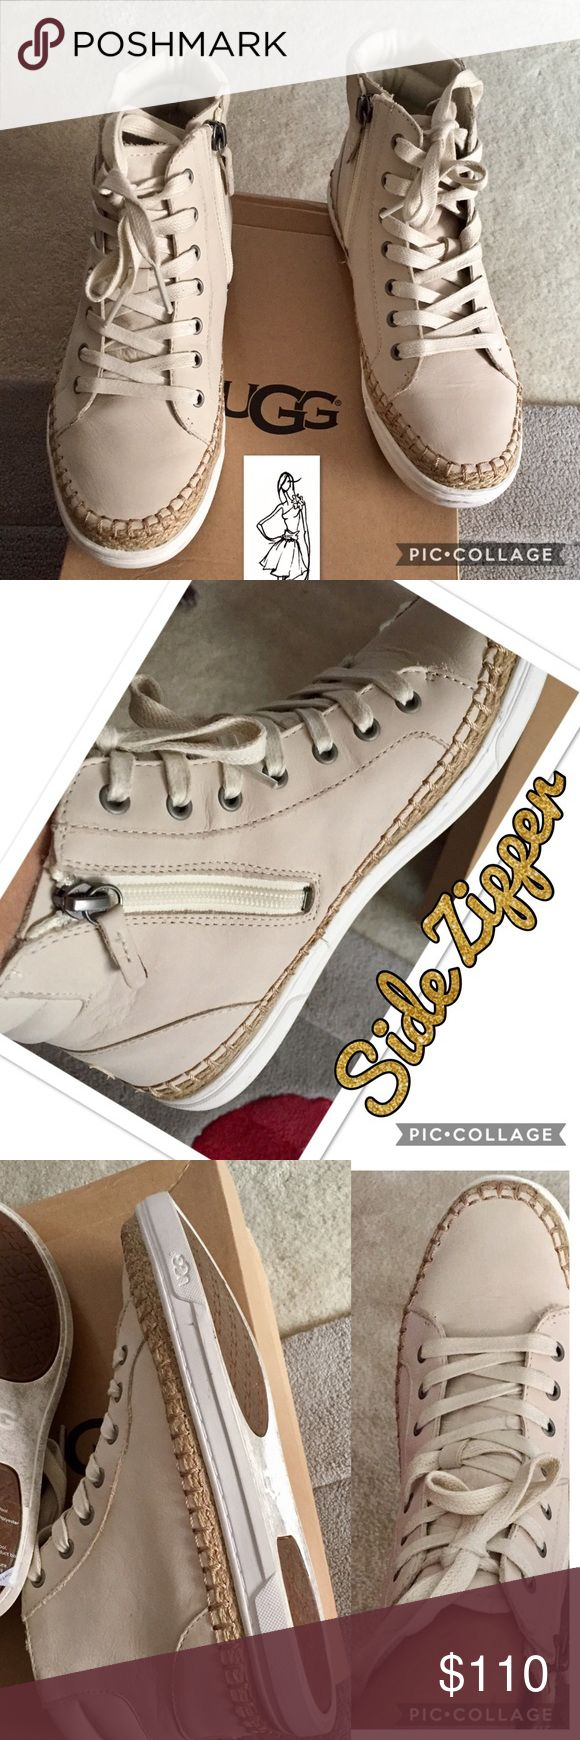 Ugg's Wheat Color High Top Sneakers Ugg's Wheat Color High Top Sneakers. Sneakers are trimmed in darker color Wheat threading. Have two pair of shoe laces, ivory color sole, & have only been worn once. Sneakers are too small for me. In Excellent Condition UGG Shoes Athletic Shoes